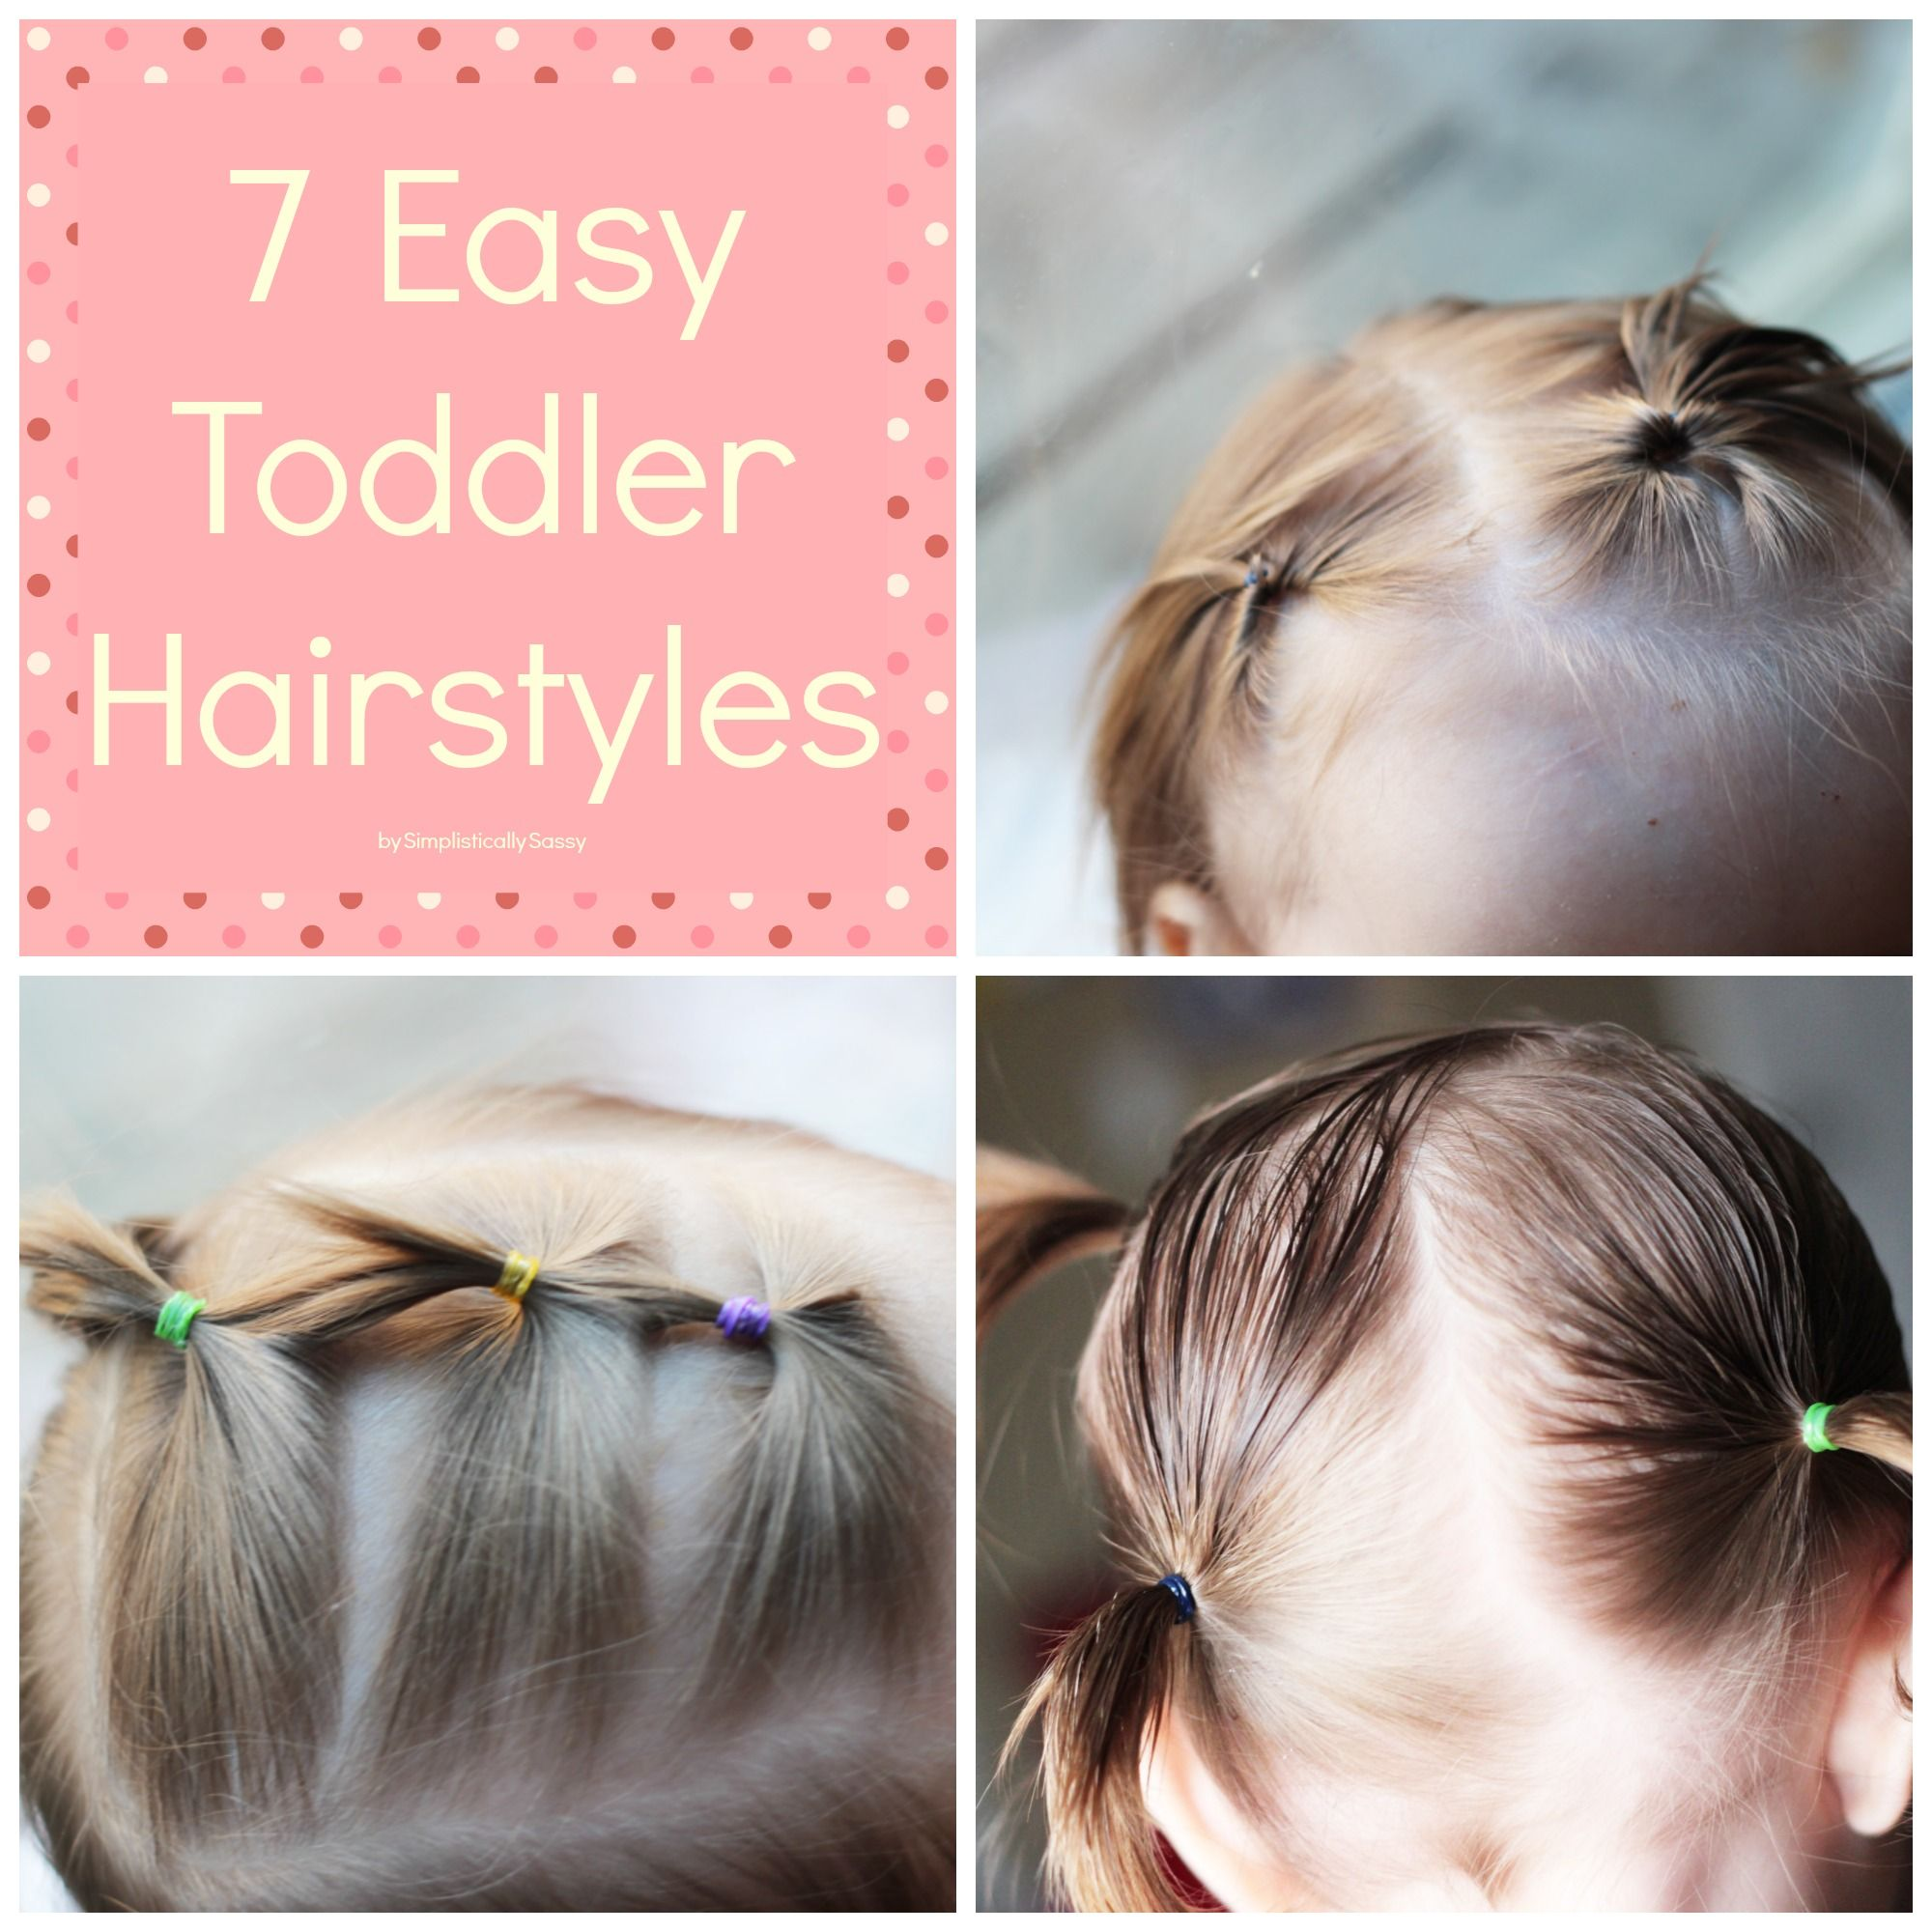 Cute easy hairstyles that kids can do - Simplistically Sassy Is Sharing 7 Quick And Easy Hairstyles For Your Busy Toddler So Grab That Spray Bottle Of Water A Comb A Few Elastics And Don T